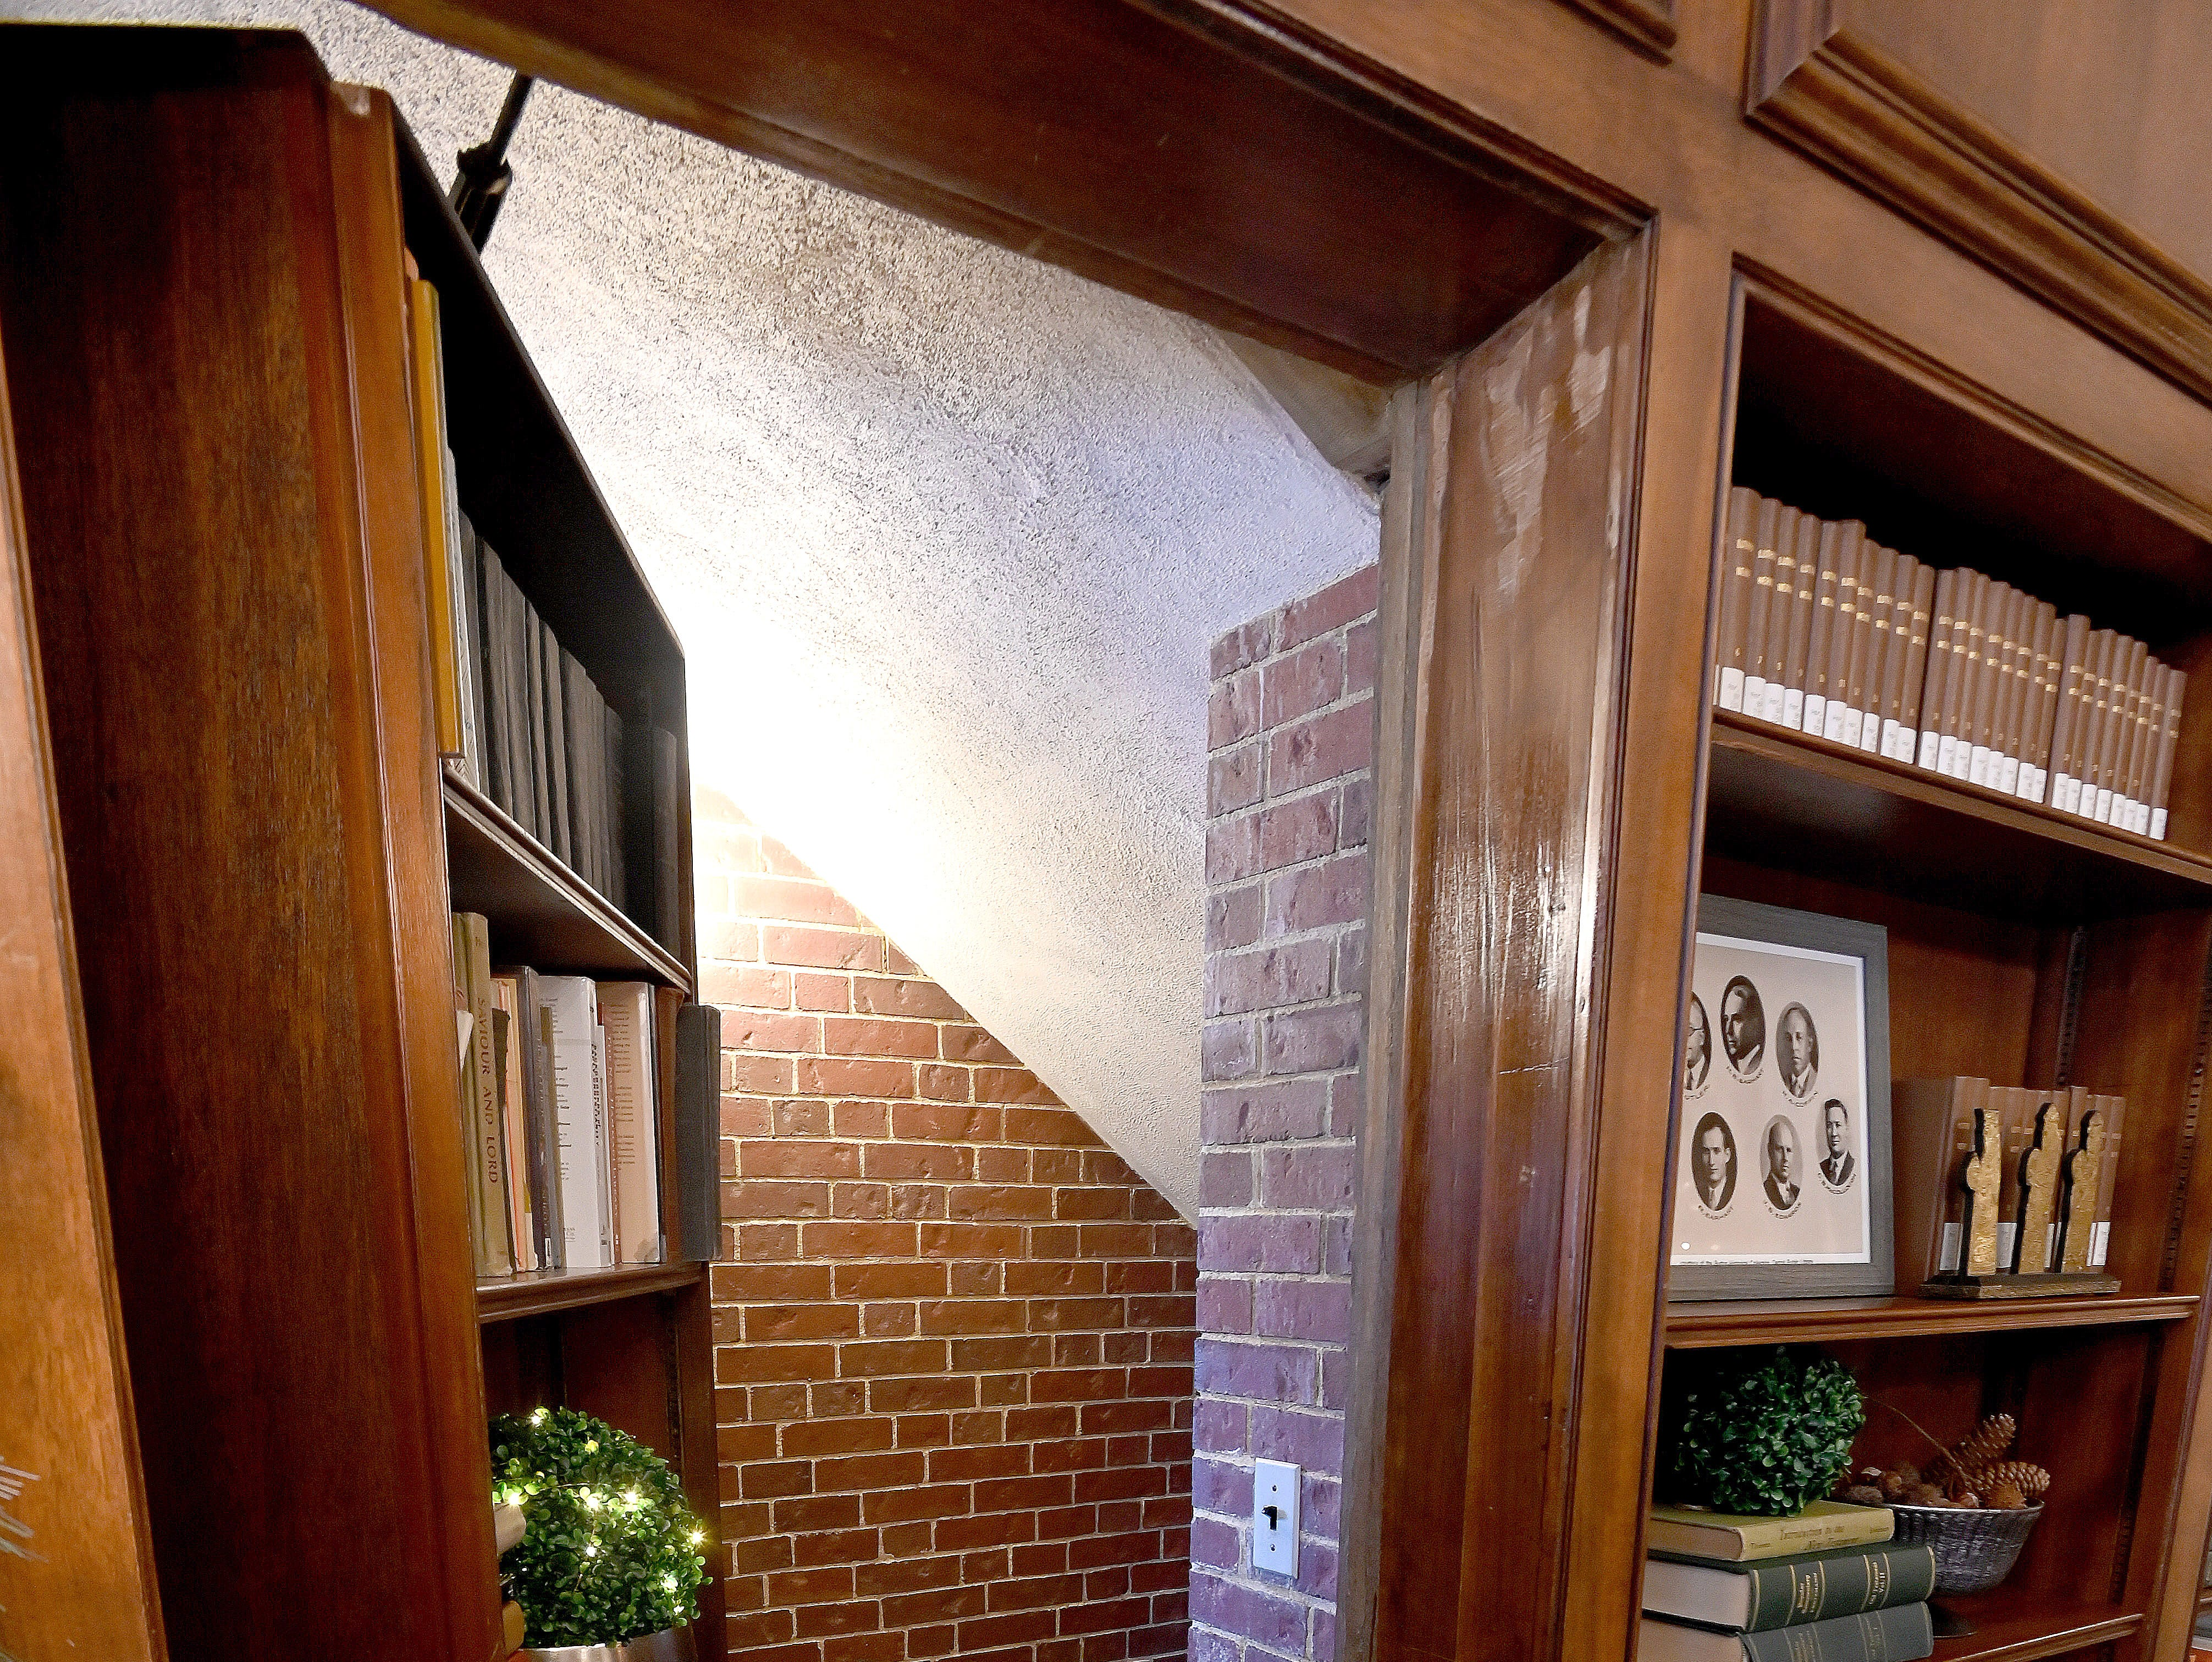 A hinged section of bookcase in the study hides a stairway to a hidden room below.